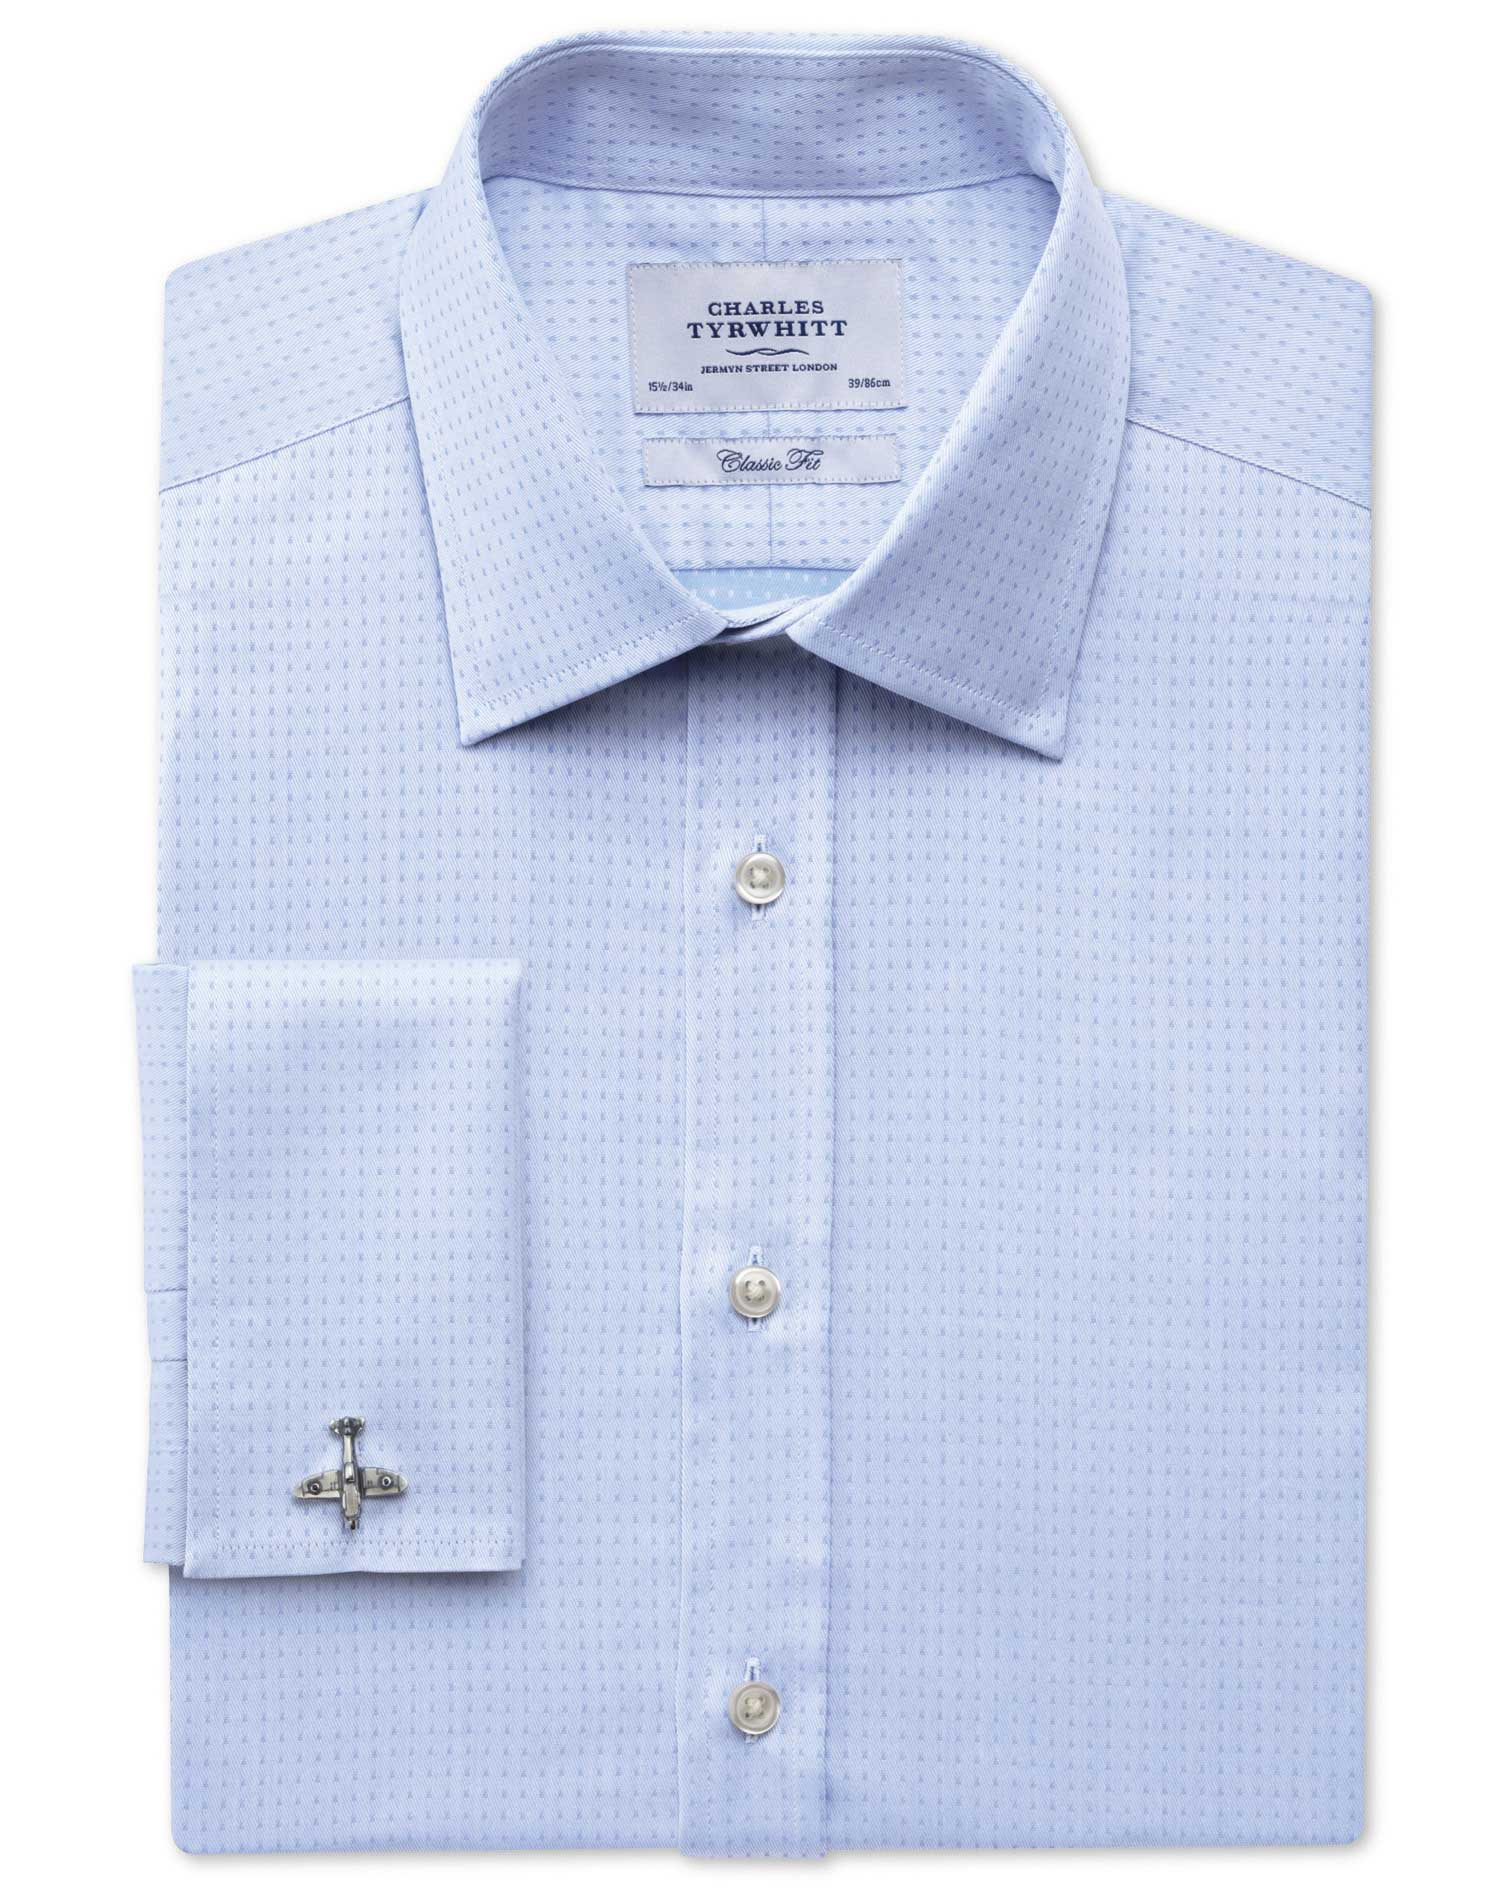 Classic Fit Egyptian Cotton Textured Dobby Sky Blue Formal Shirt Single Cuff Size 16/38 by Charles T